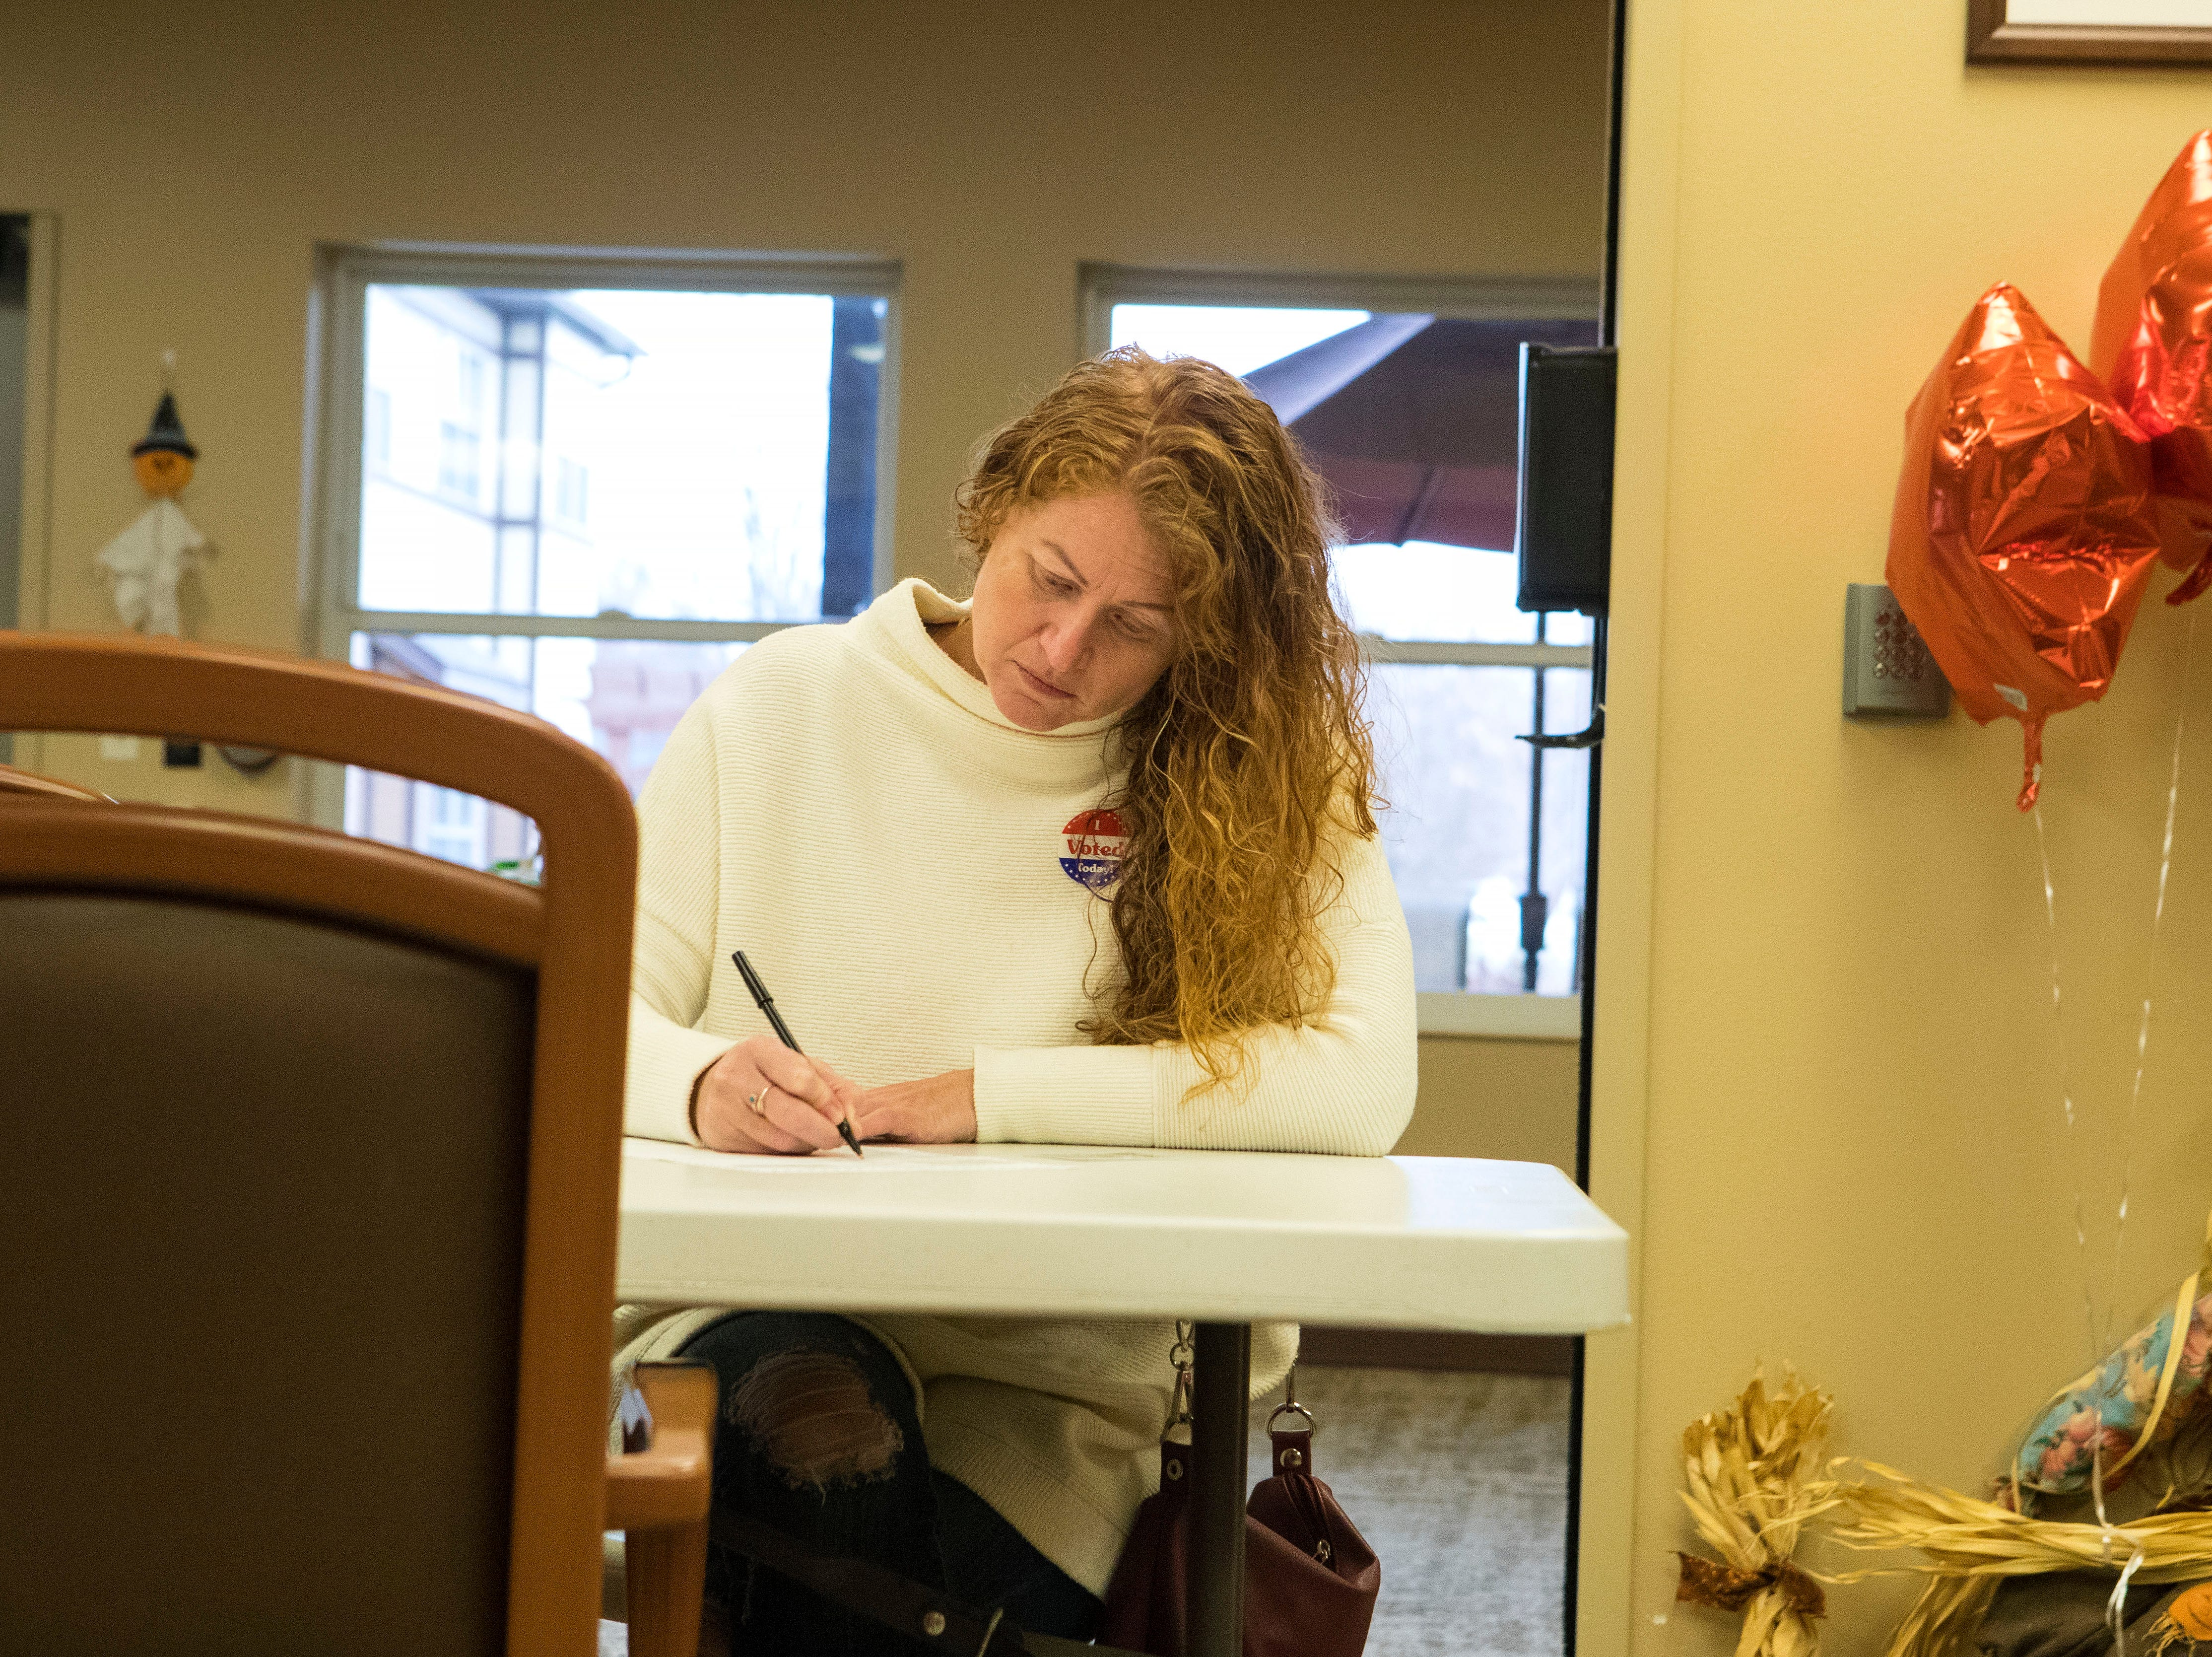 Sioux Falls resident fills out her ballot at Avera Prince of Peace Retirement Community in Sioux Falls, S.D., Tuesday, Nov. 6, 2018.